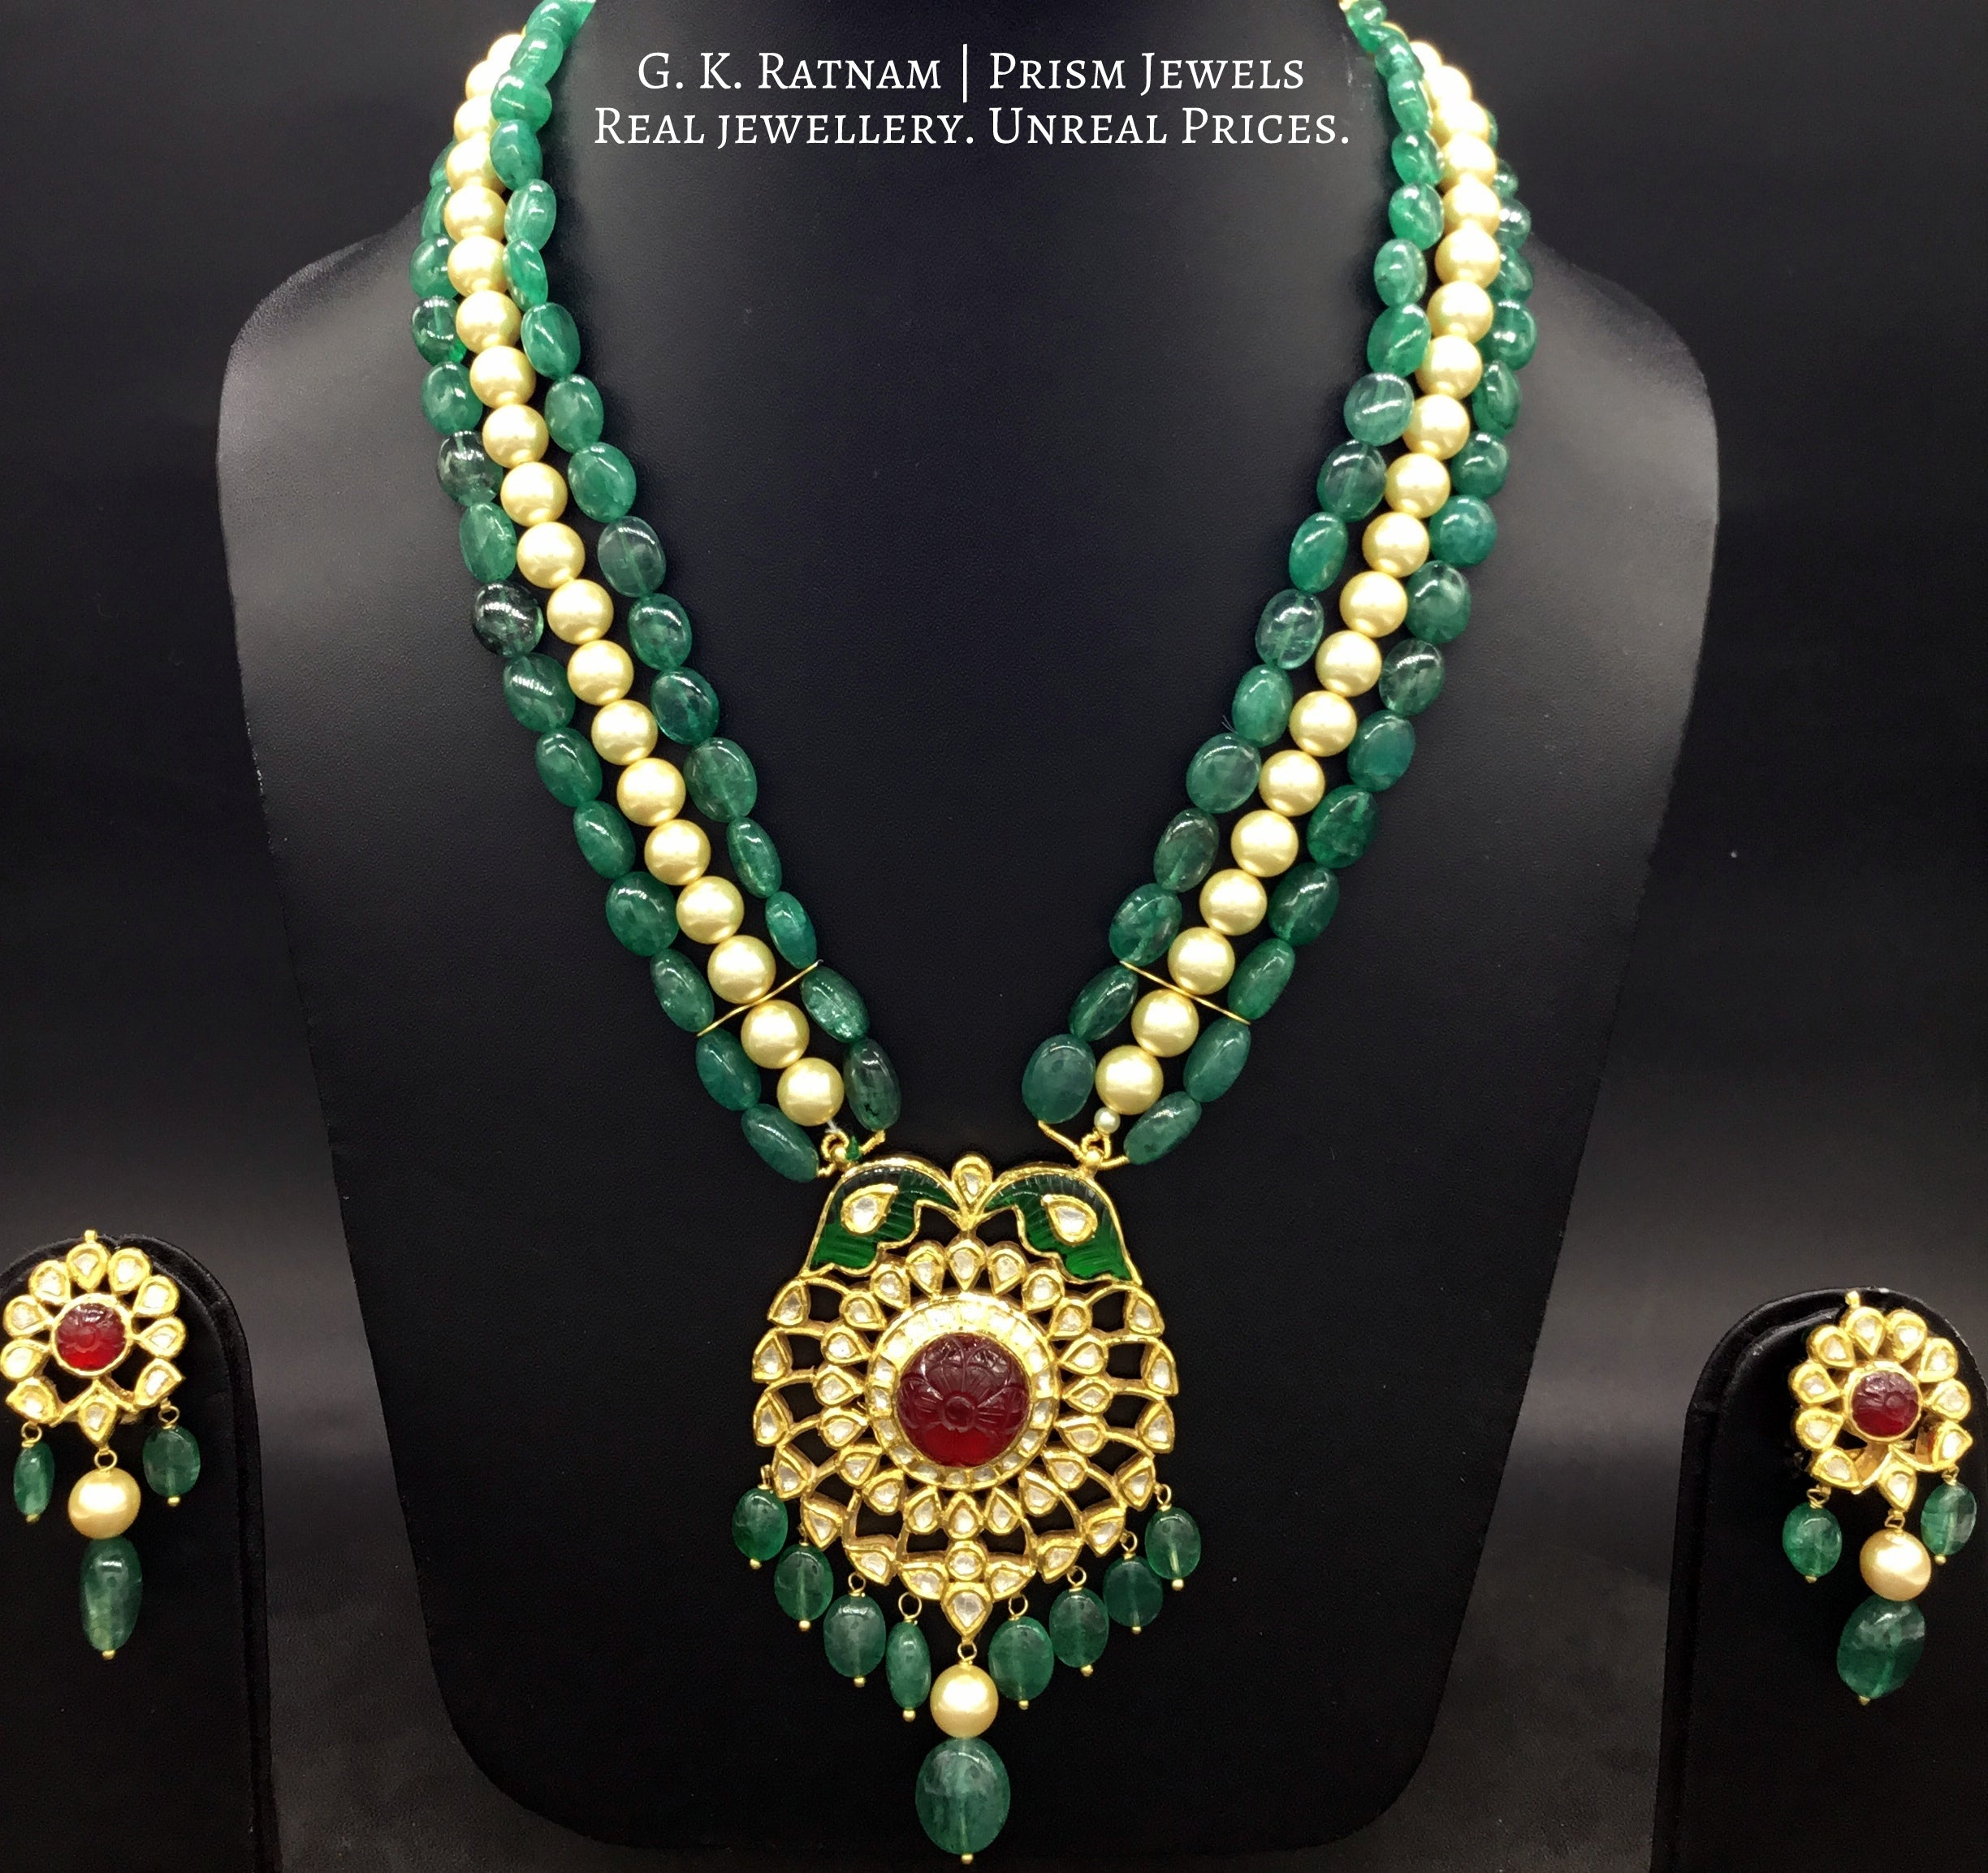 Traditional Gold and Diamond Polki carved-red-center Pendant Set with emerald-grade beryls and pearls - gold diamond polki kundan meena jadau jewellery